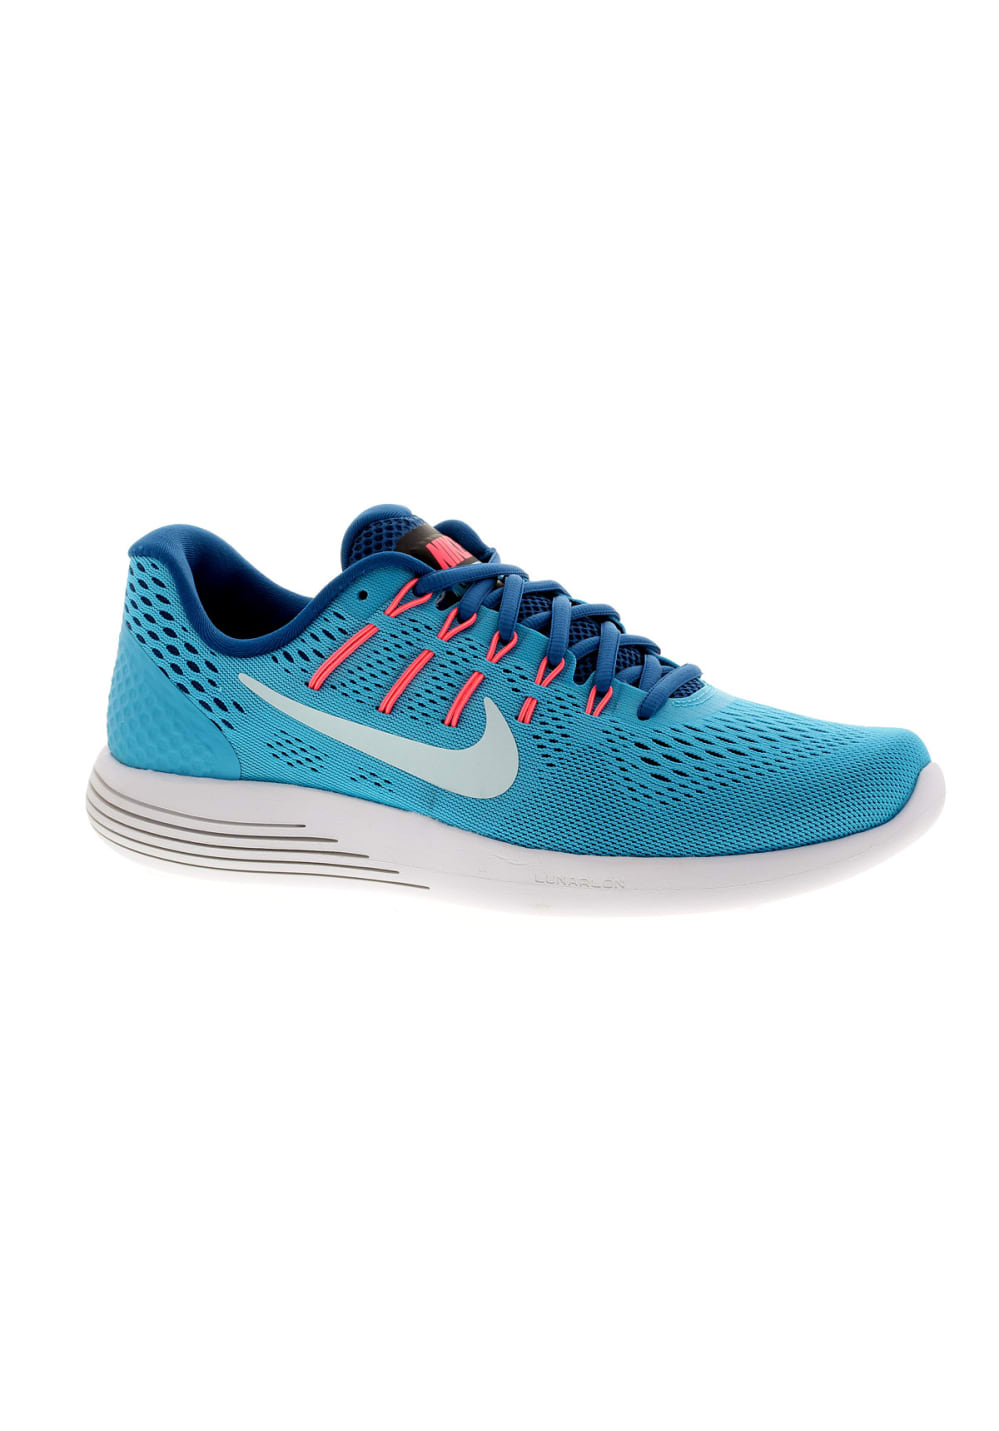 sports shoes b24e0 d244f Next. Nike. Lunarglide 8 ...